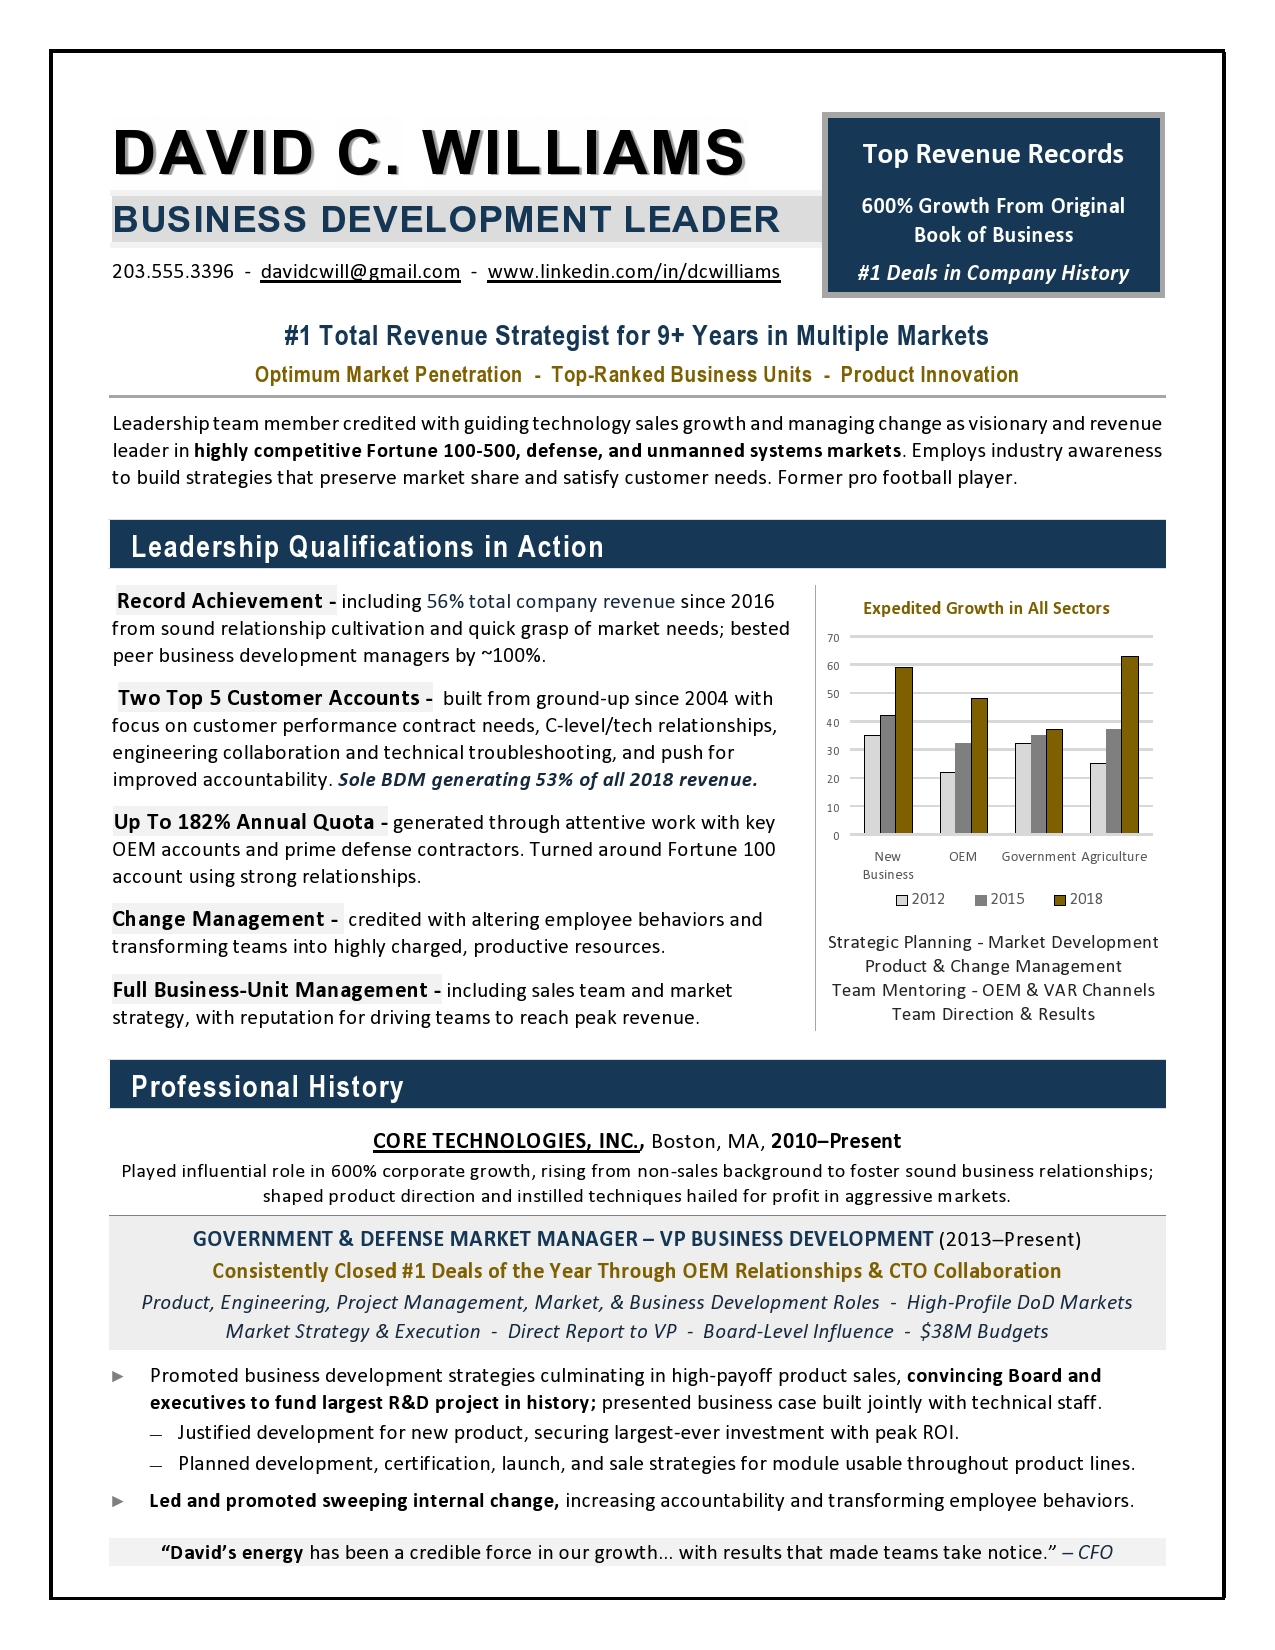 vp business development resume example